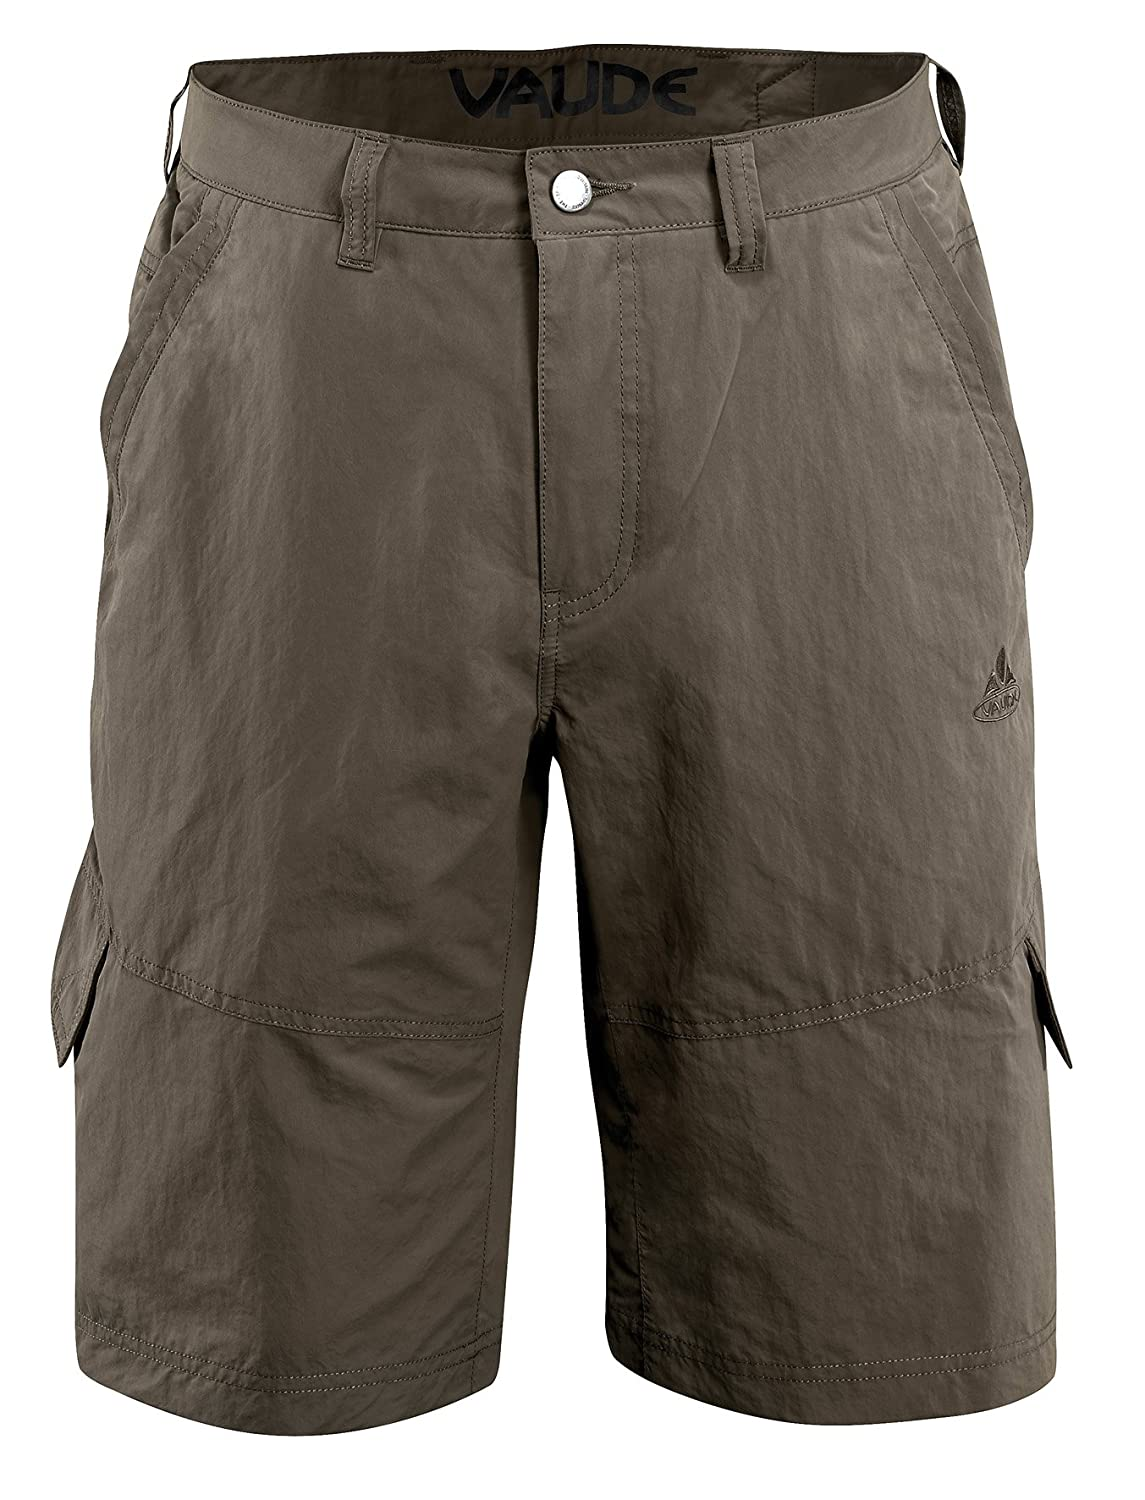 Vaude Hose Men's Verdon Shorts